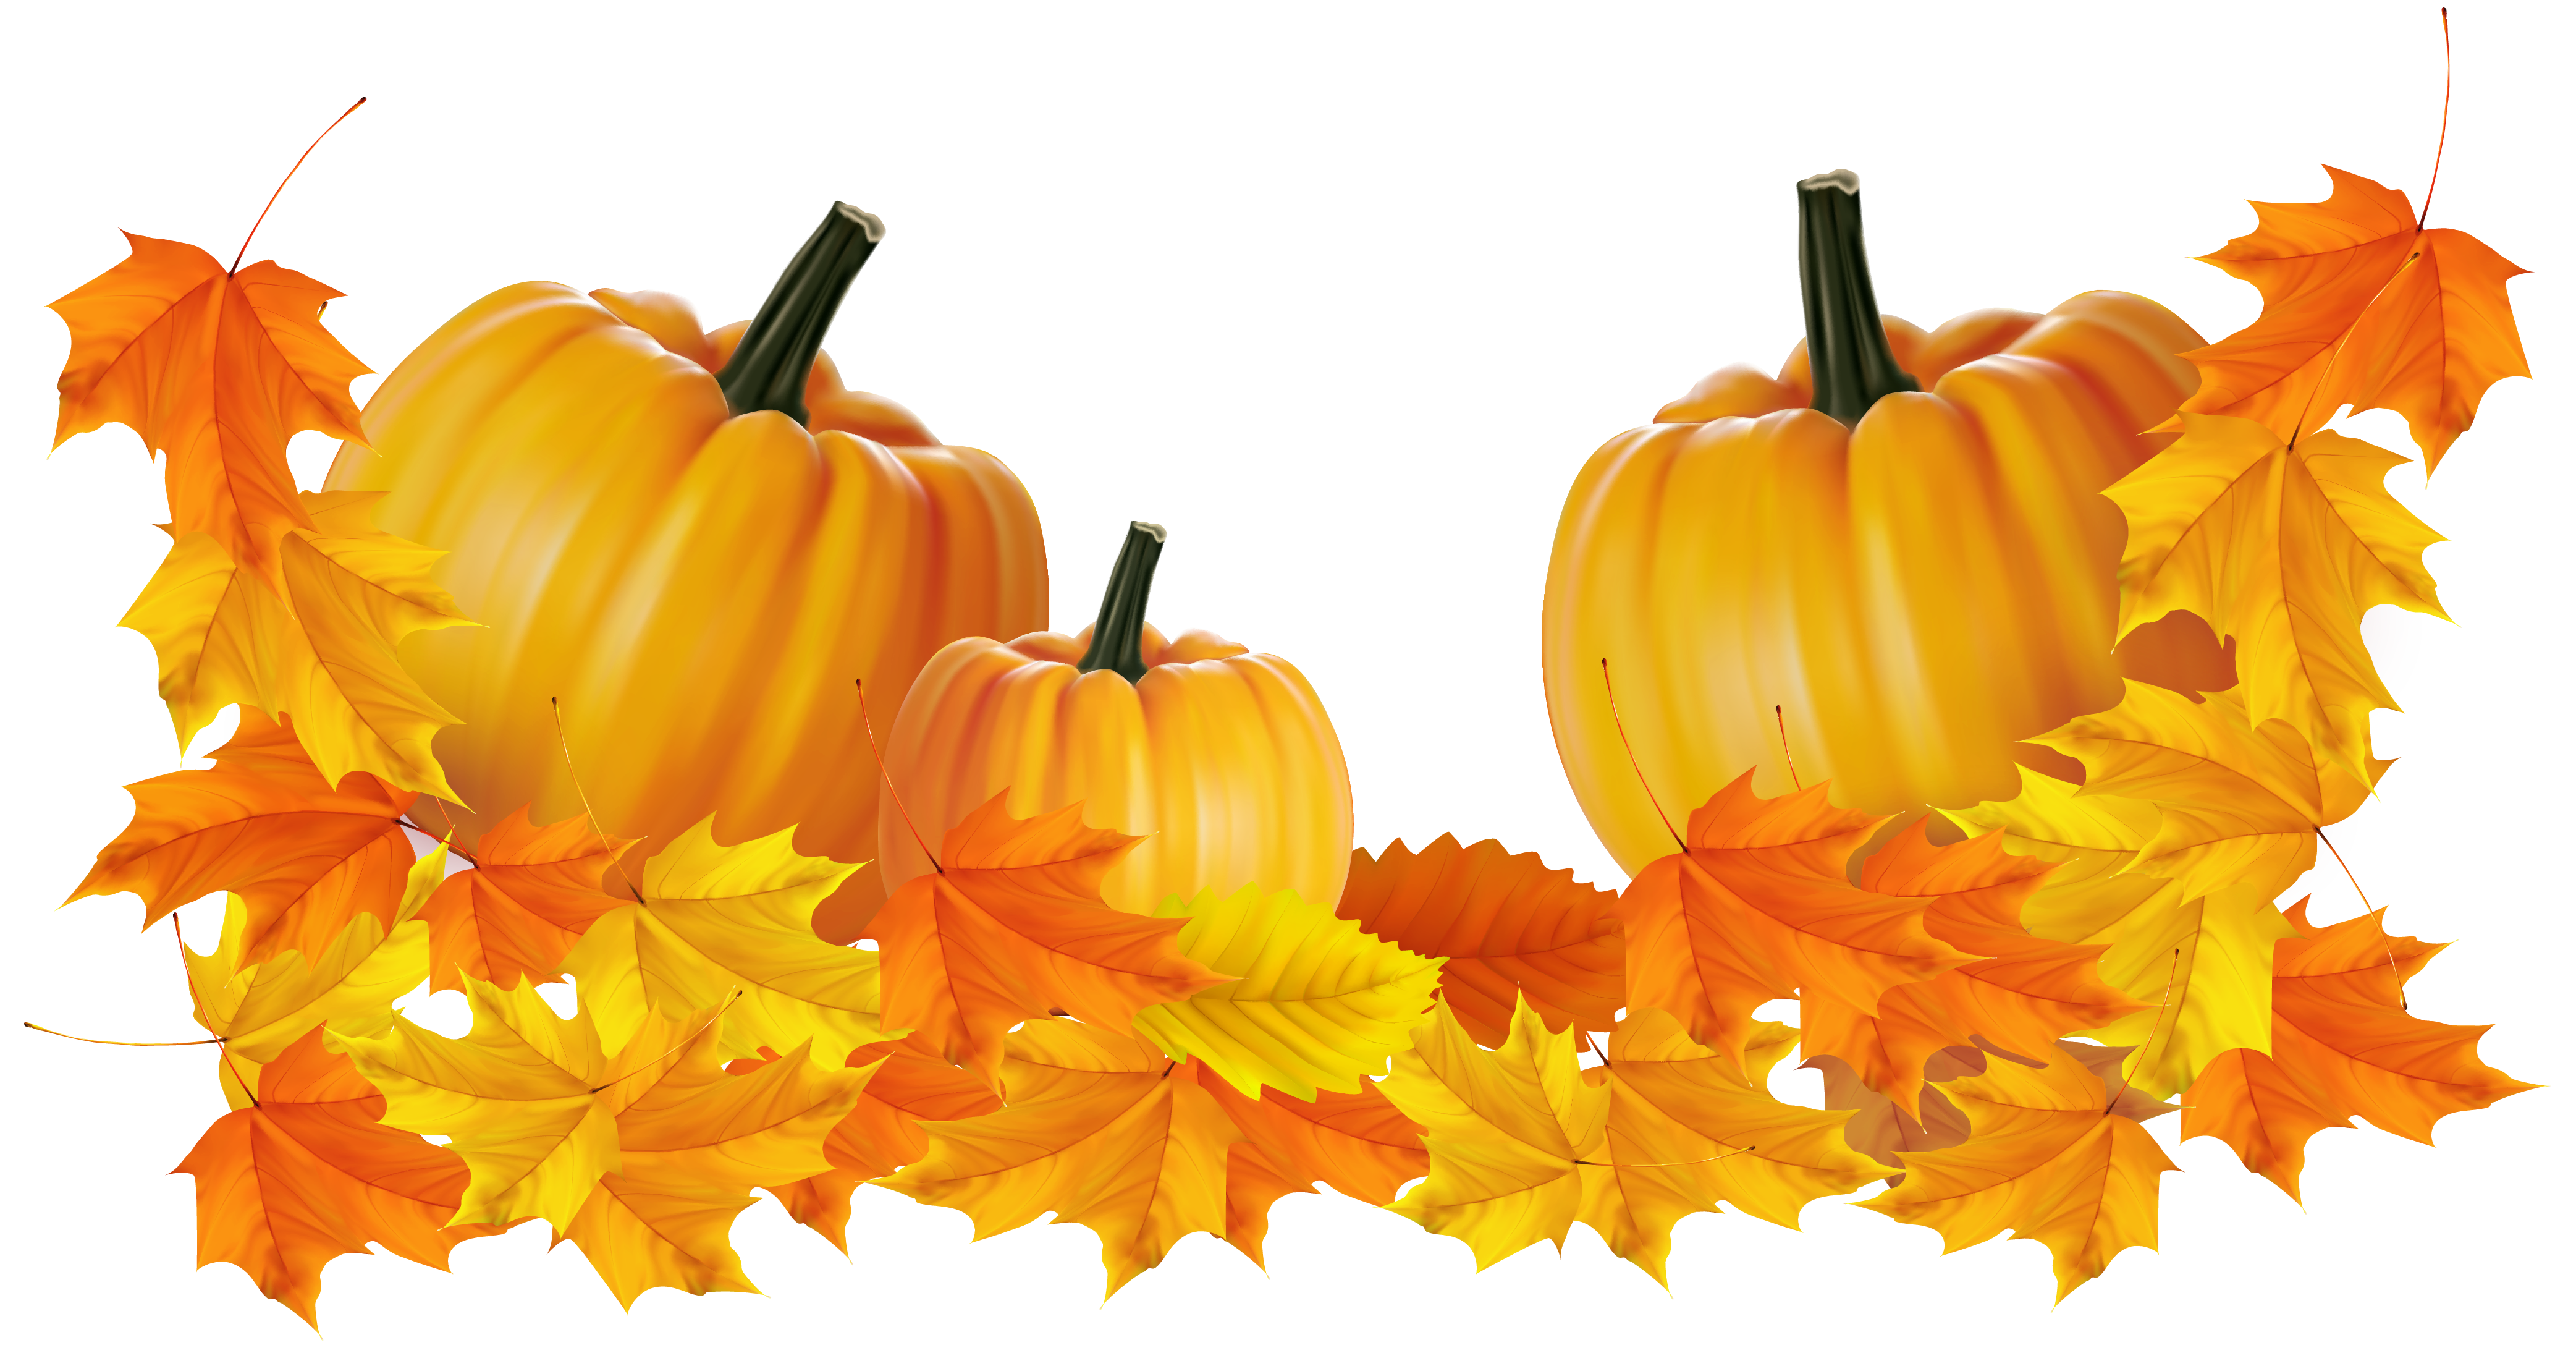 Thanksgiving borders png. Transparent pumpkin decor clipart